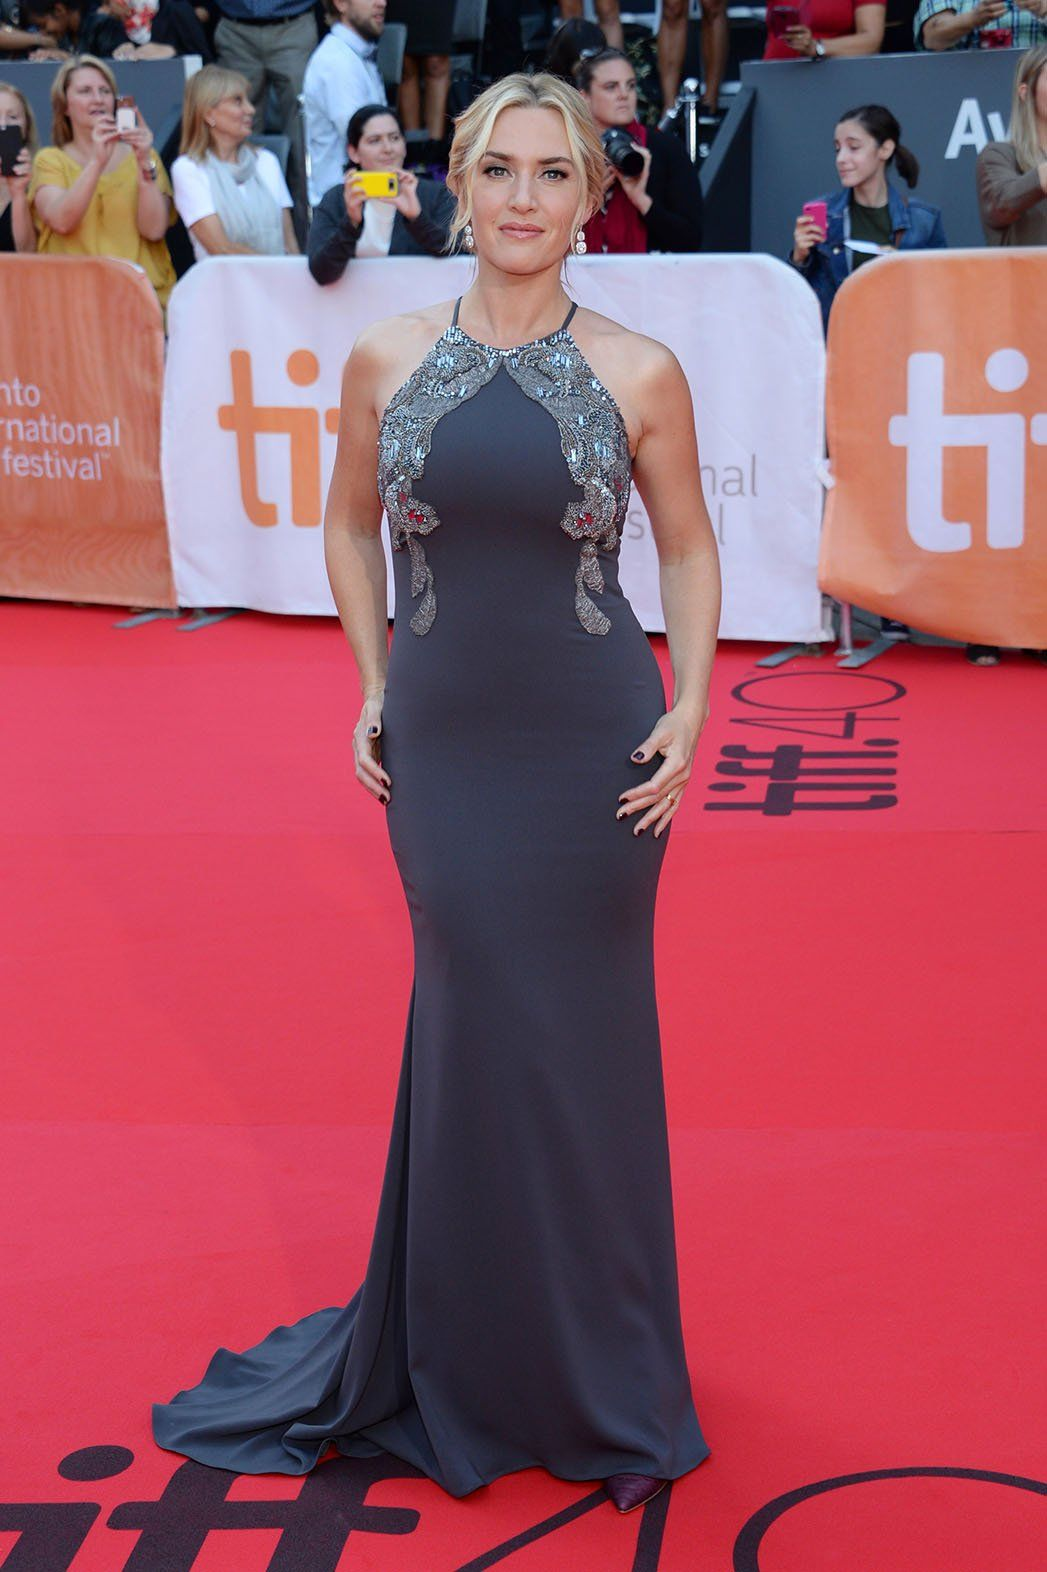 Kate winslet red carpet pinterest carpets red carpets and photos